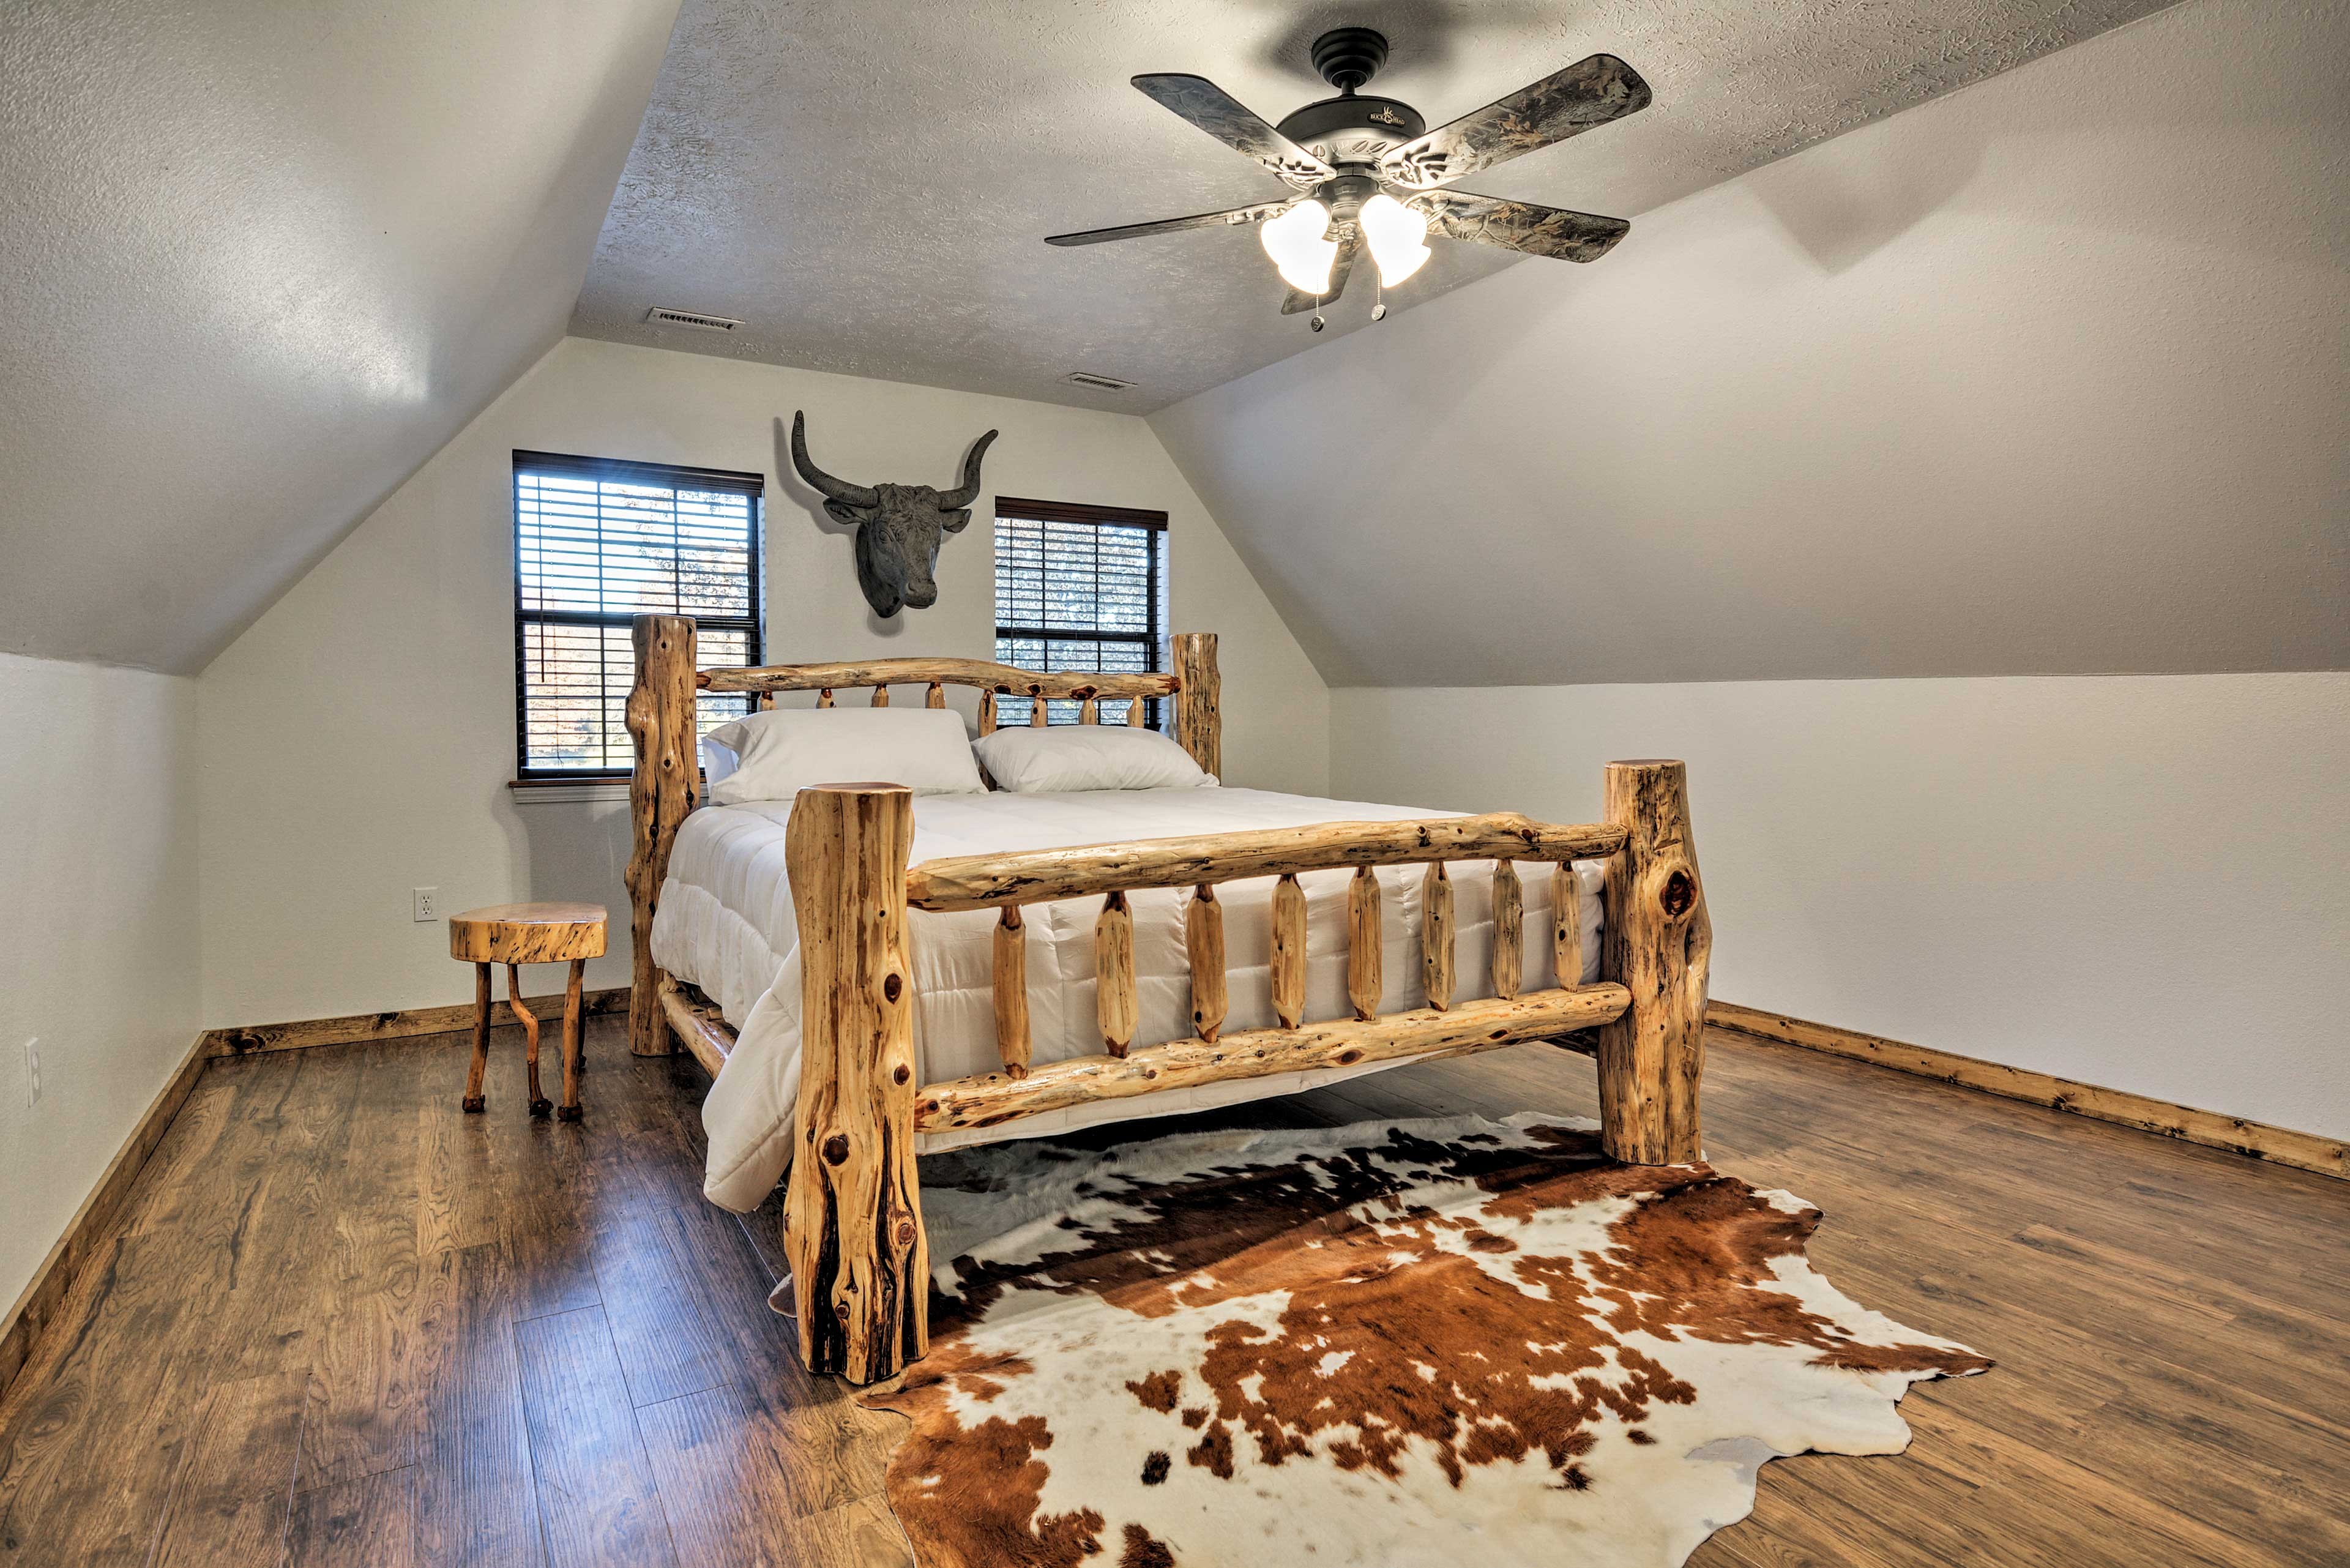 Two guests can sleep comfortably in this king bed.